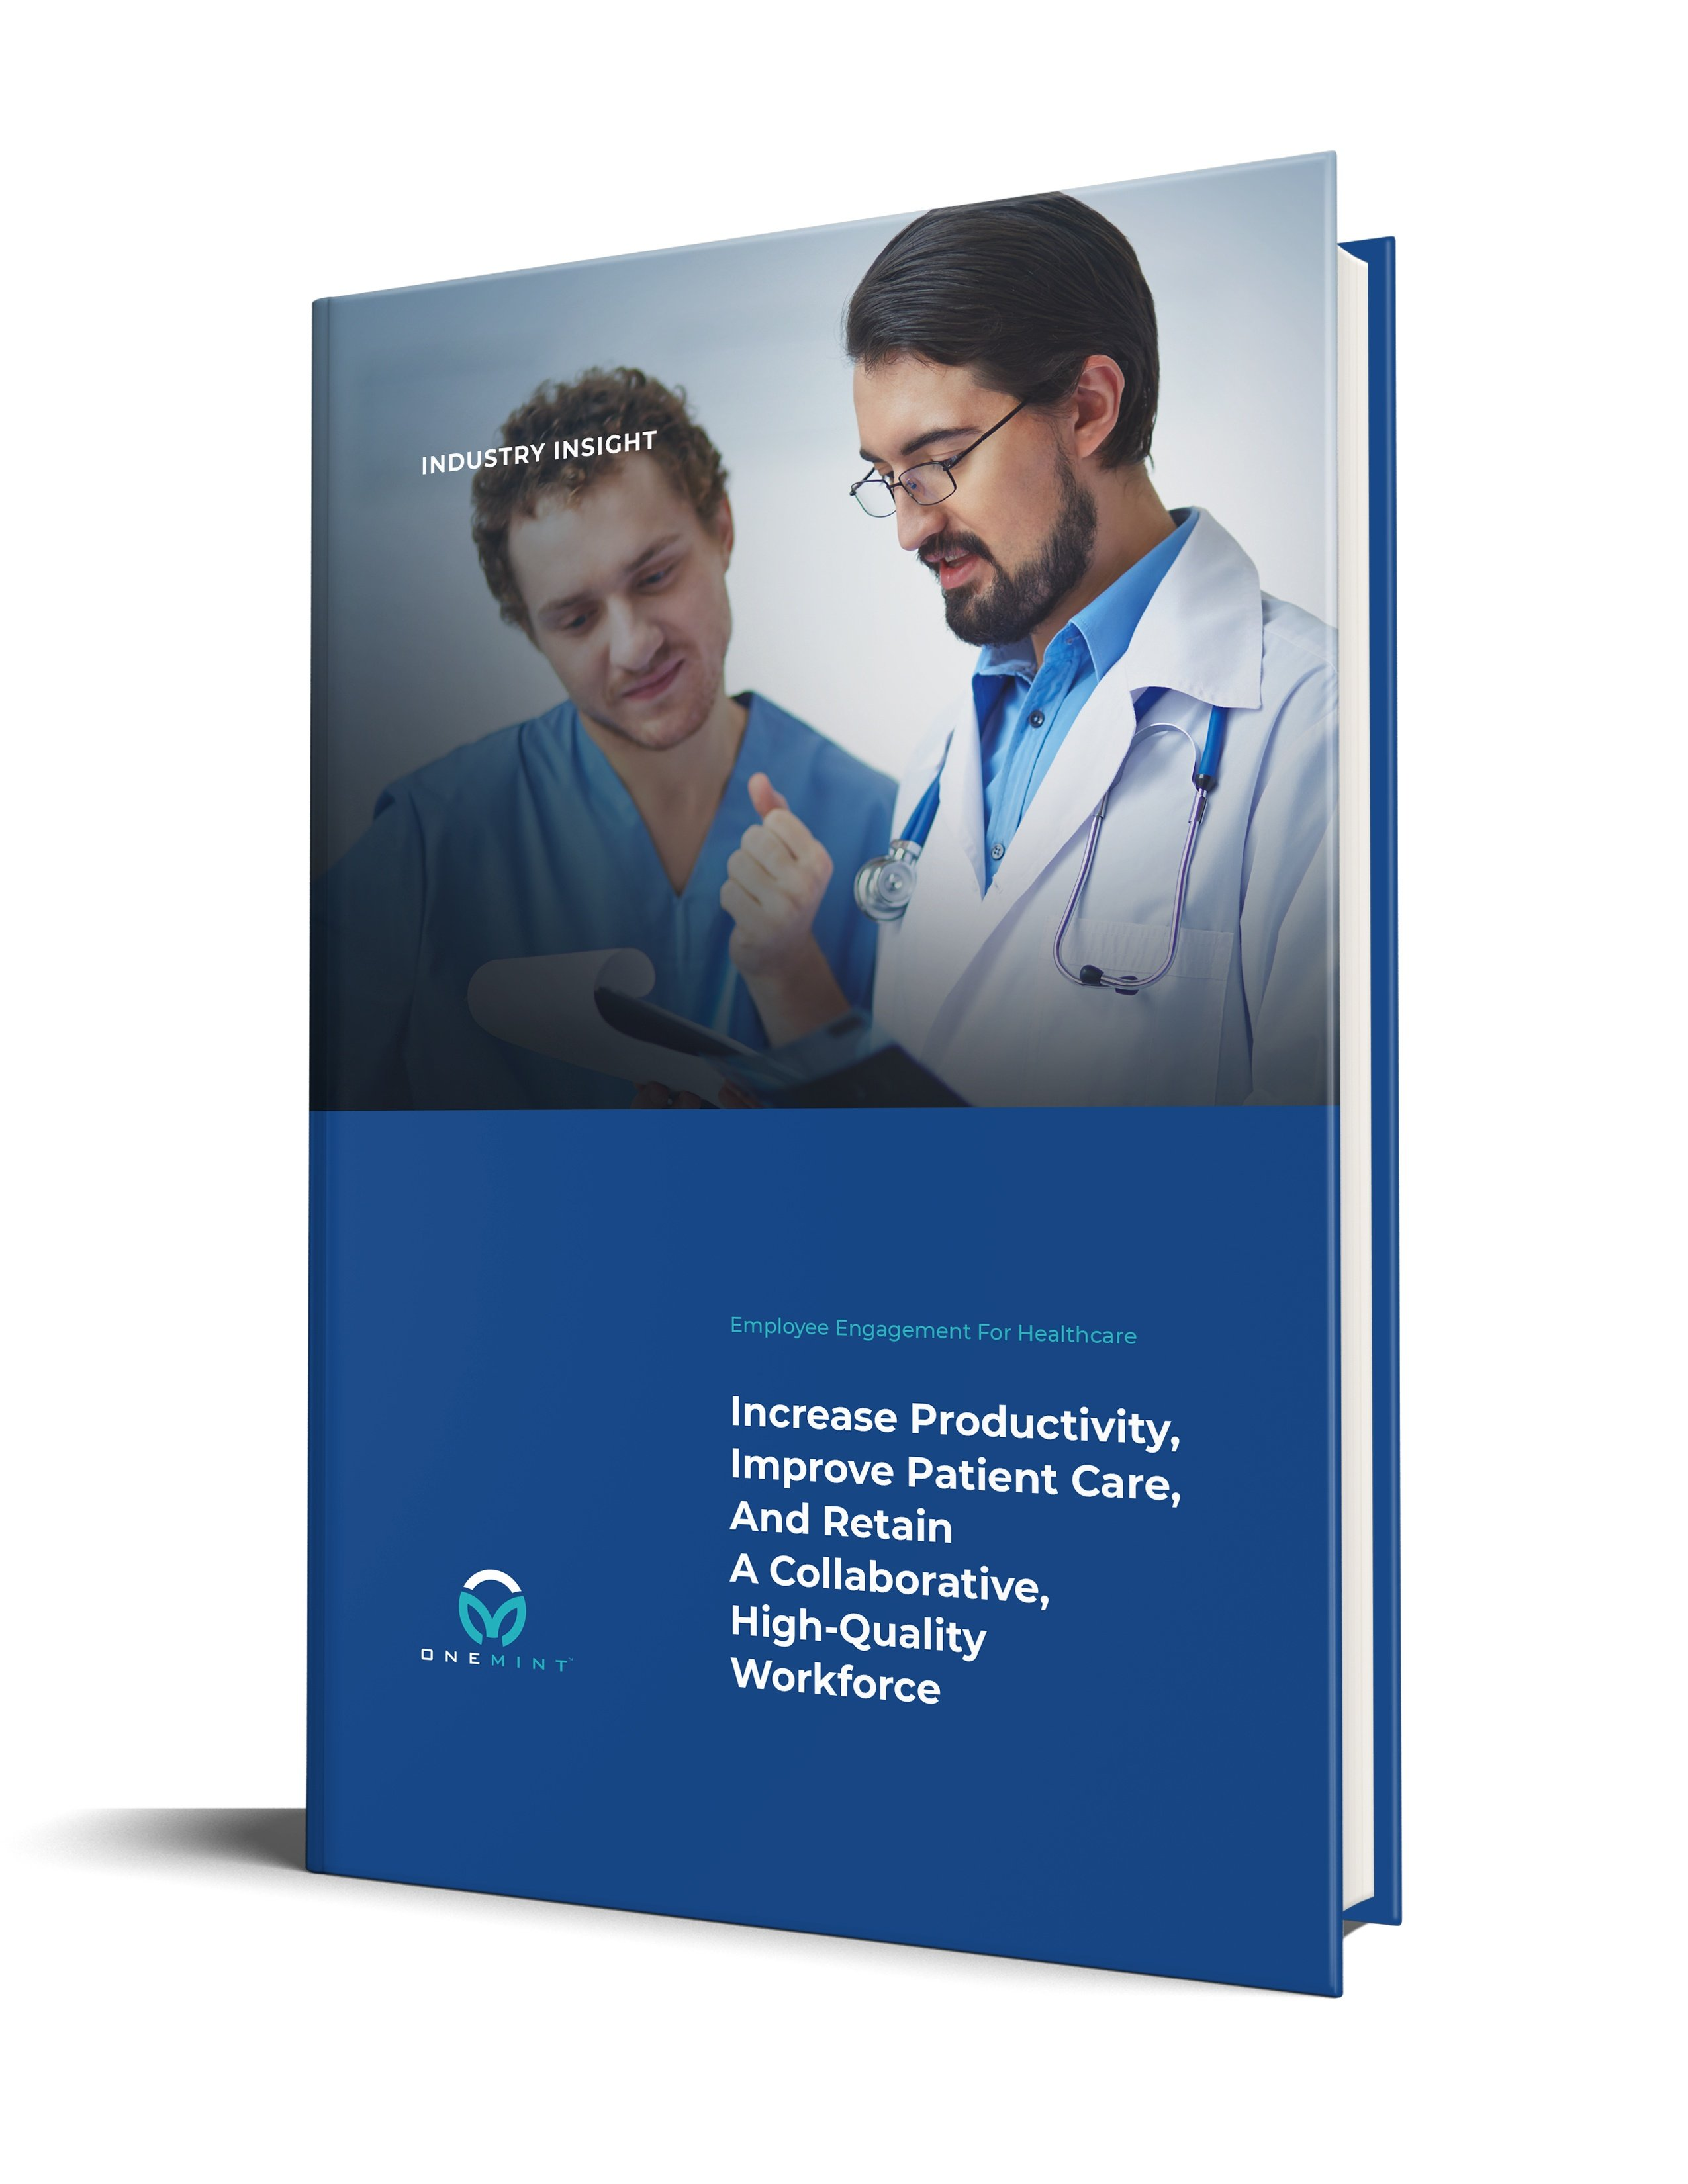 Employee Engagement in the Healthcare industry